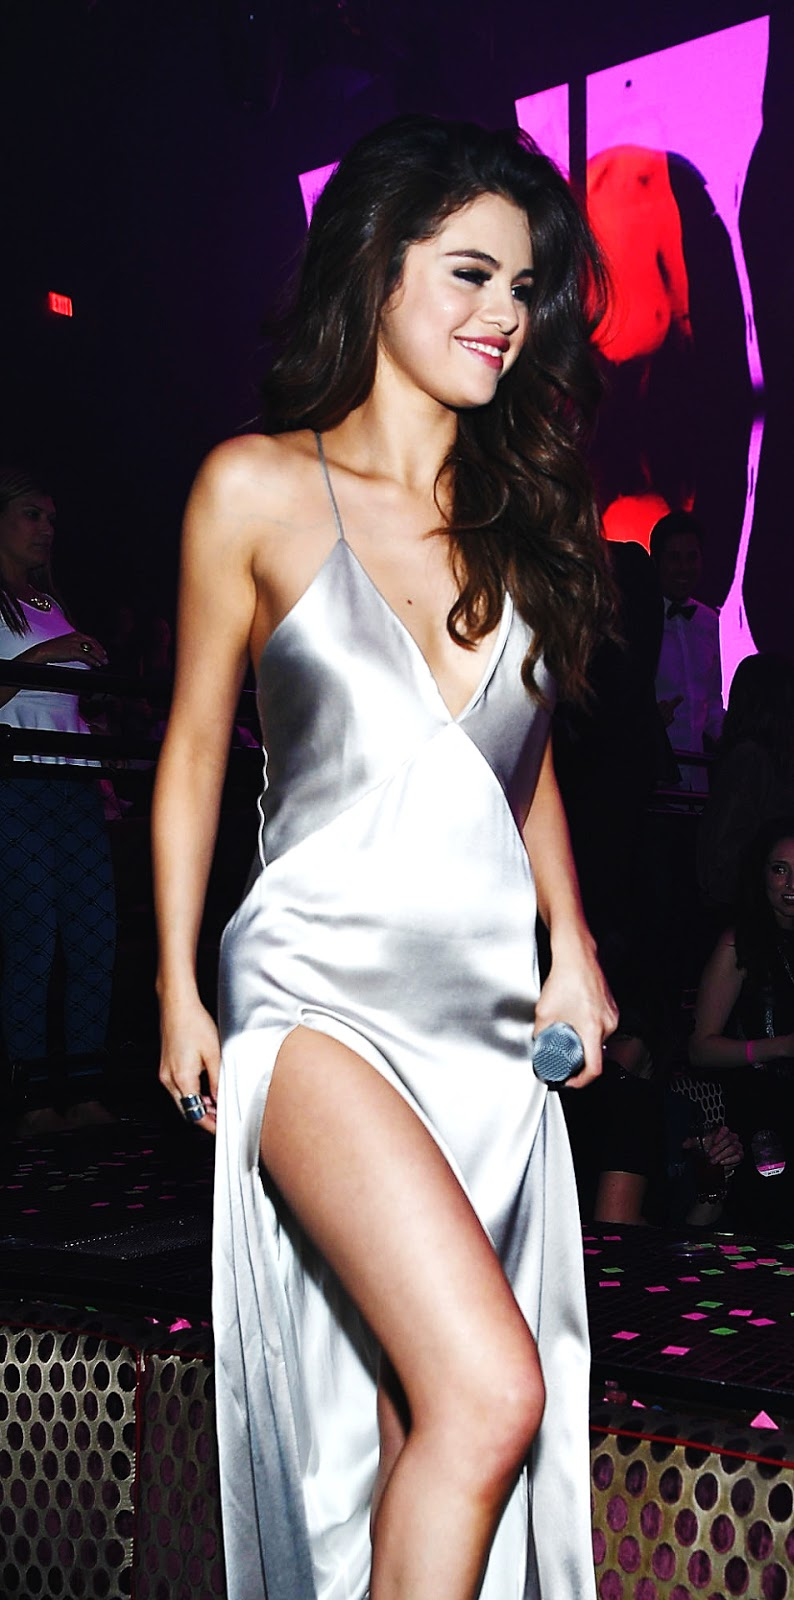 Selena Gomez Looking Hot in Silver Outfit